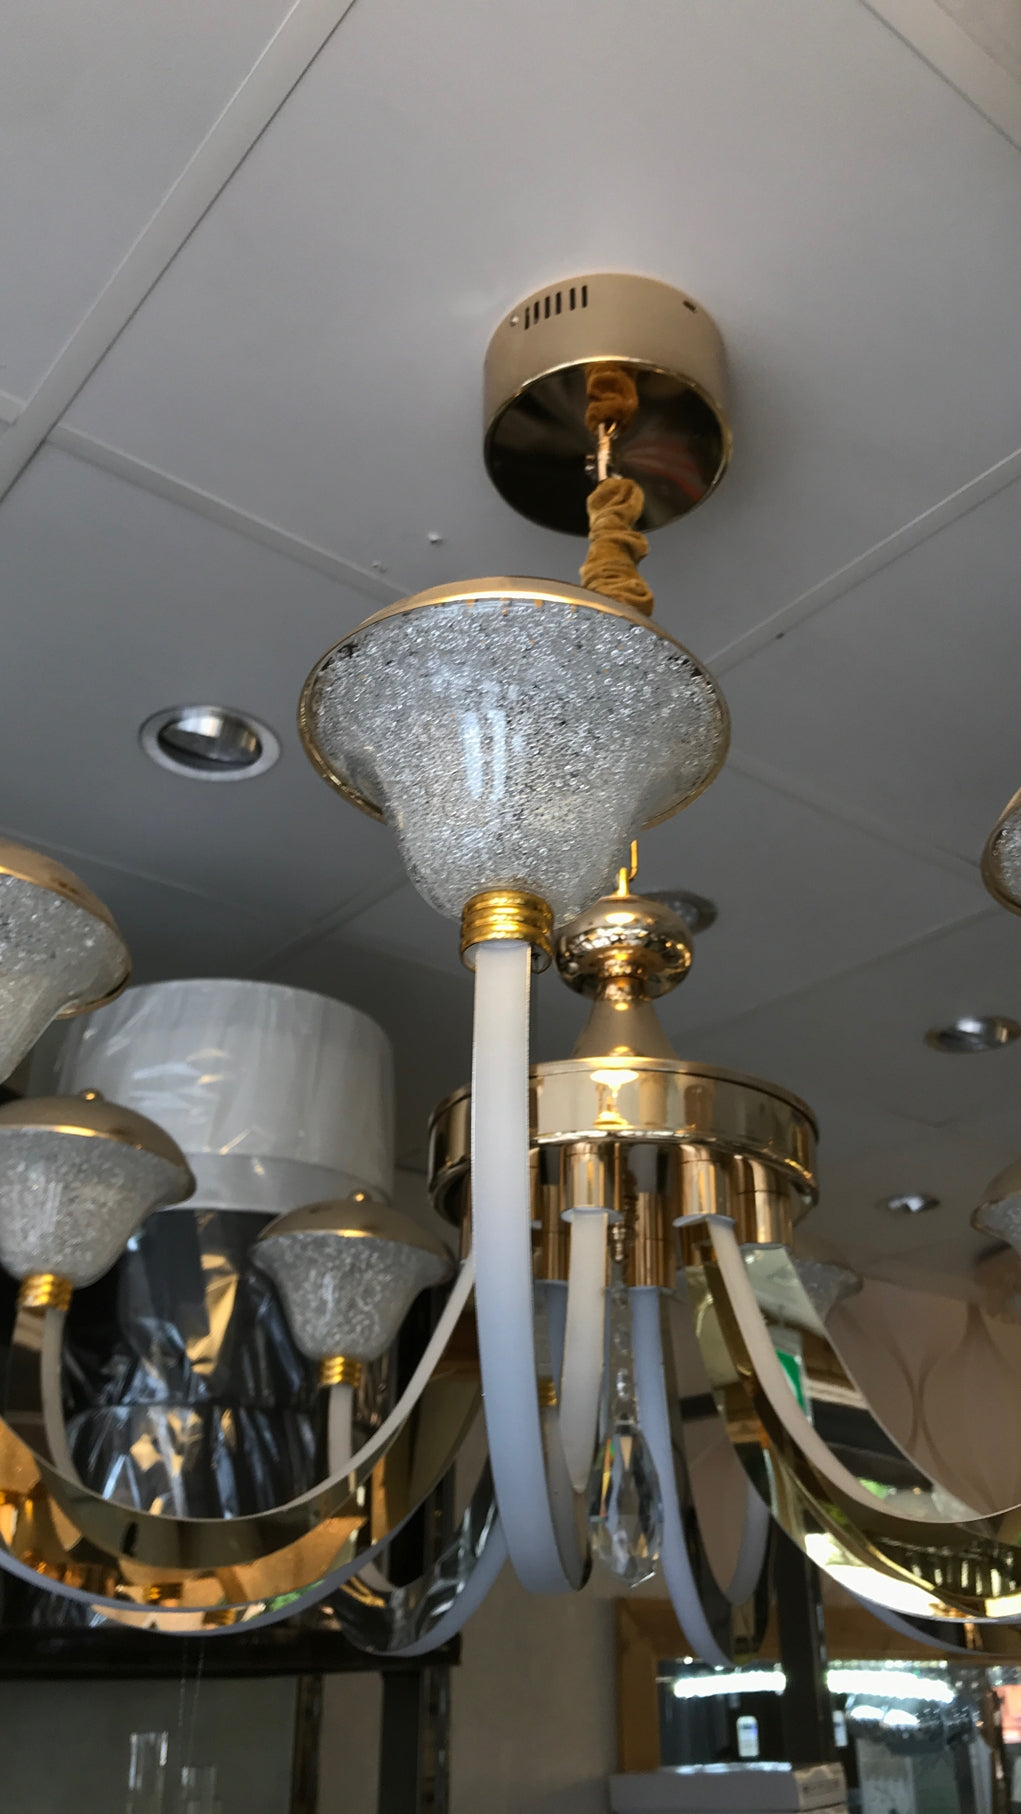 Upwards 3 shades lighting 8 arms suspended ceiling Chandelier [2025-8]